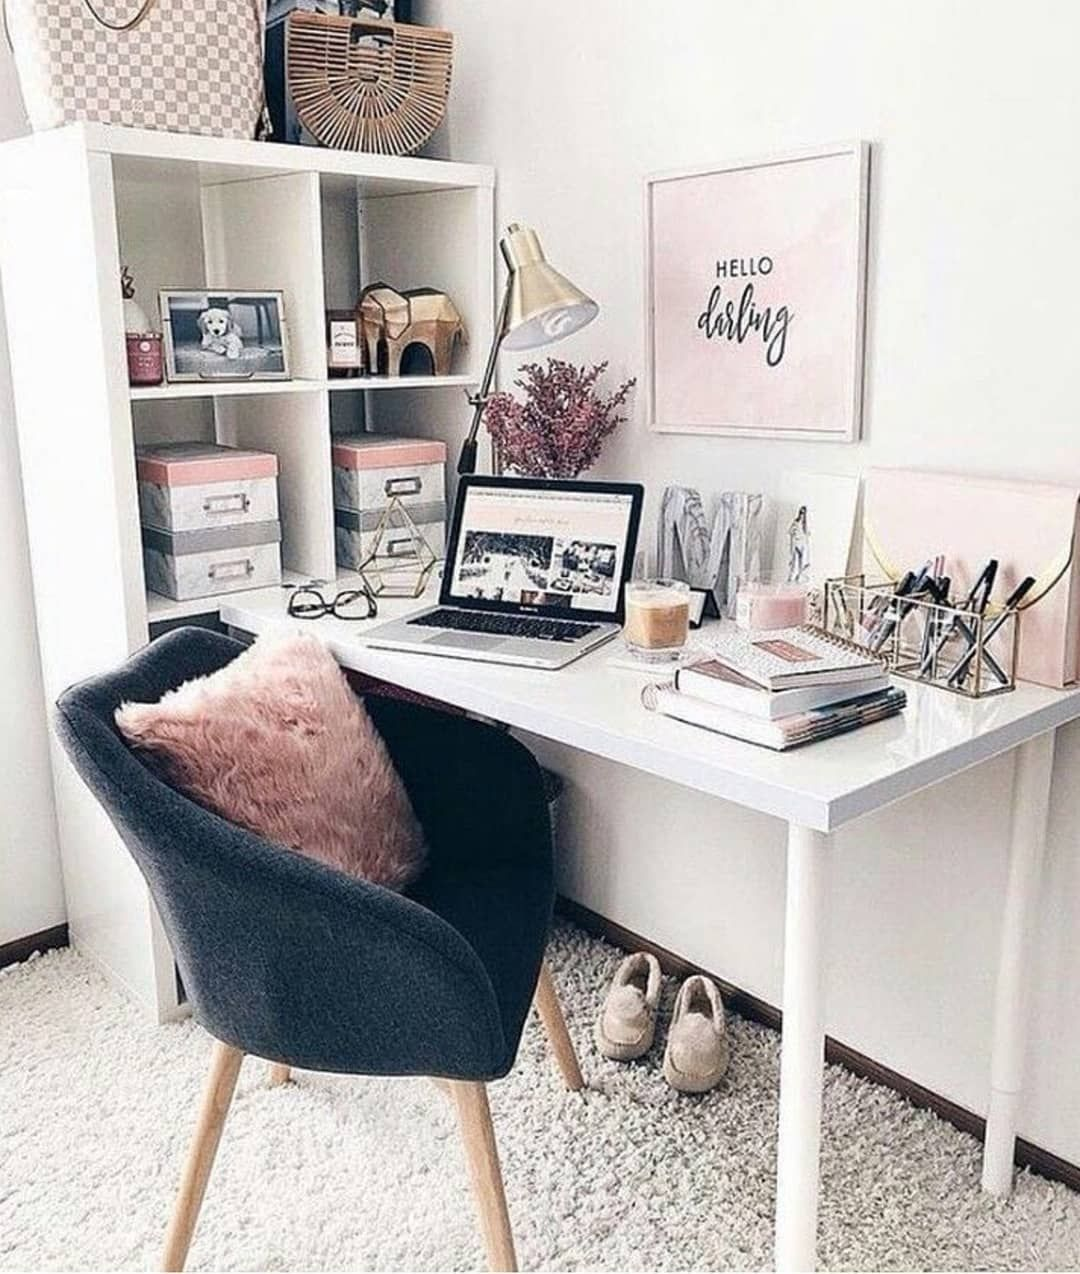 An Inspiring Space Is The Key To A Productive Day! #desklifebliss  #homeoffice #